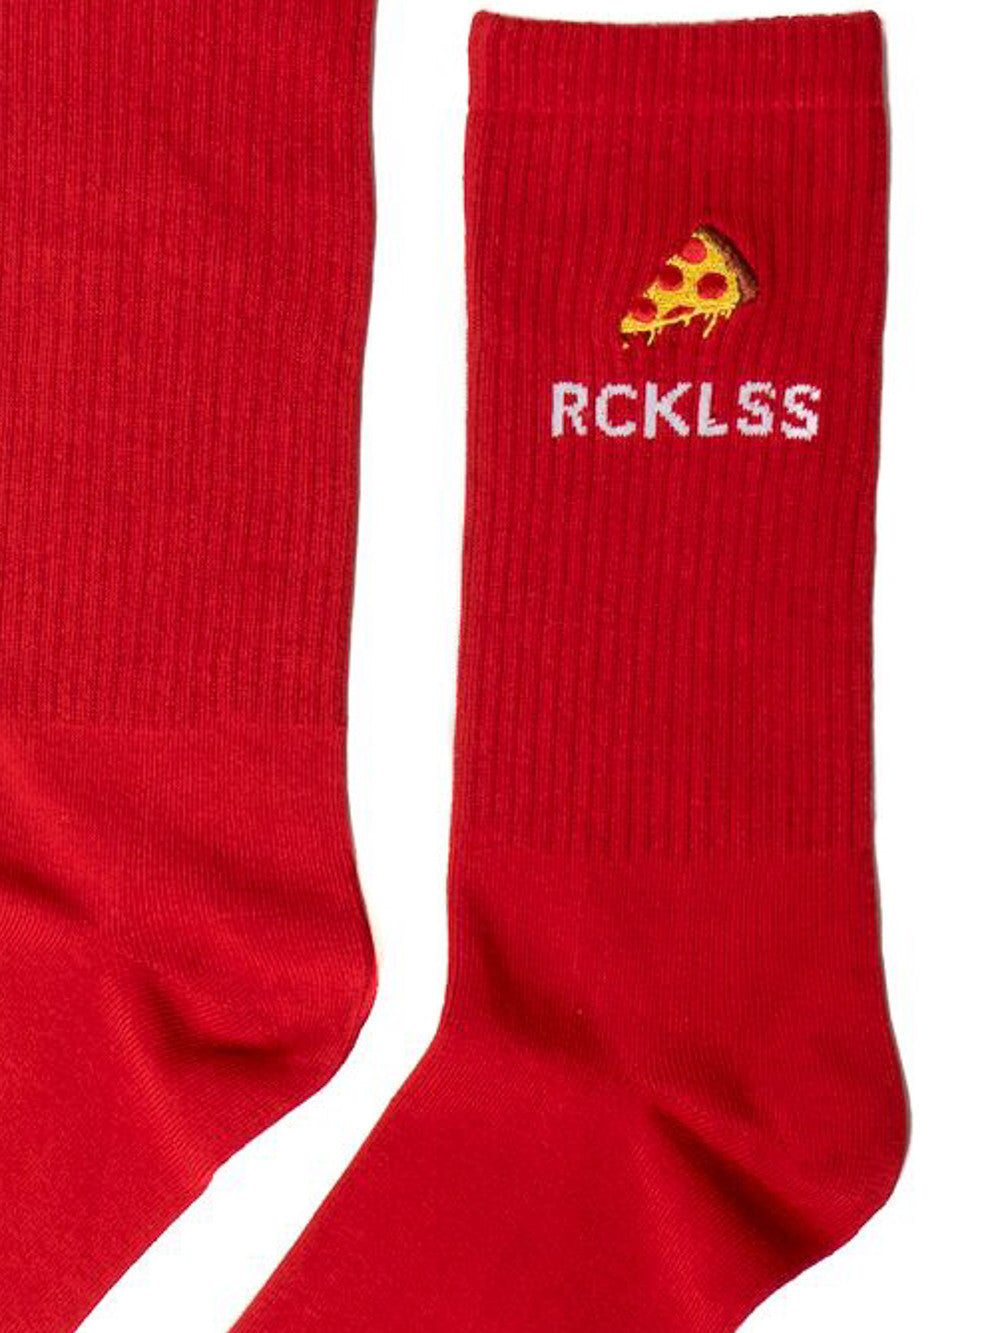 Young and Reckless Mens - Accessories - Socks Slice Socks - Red